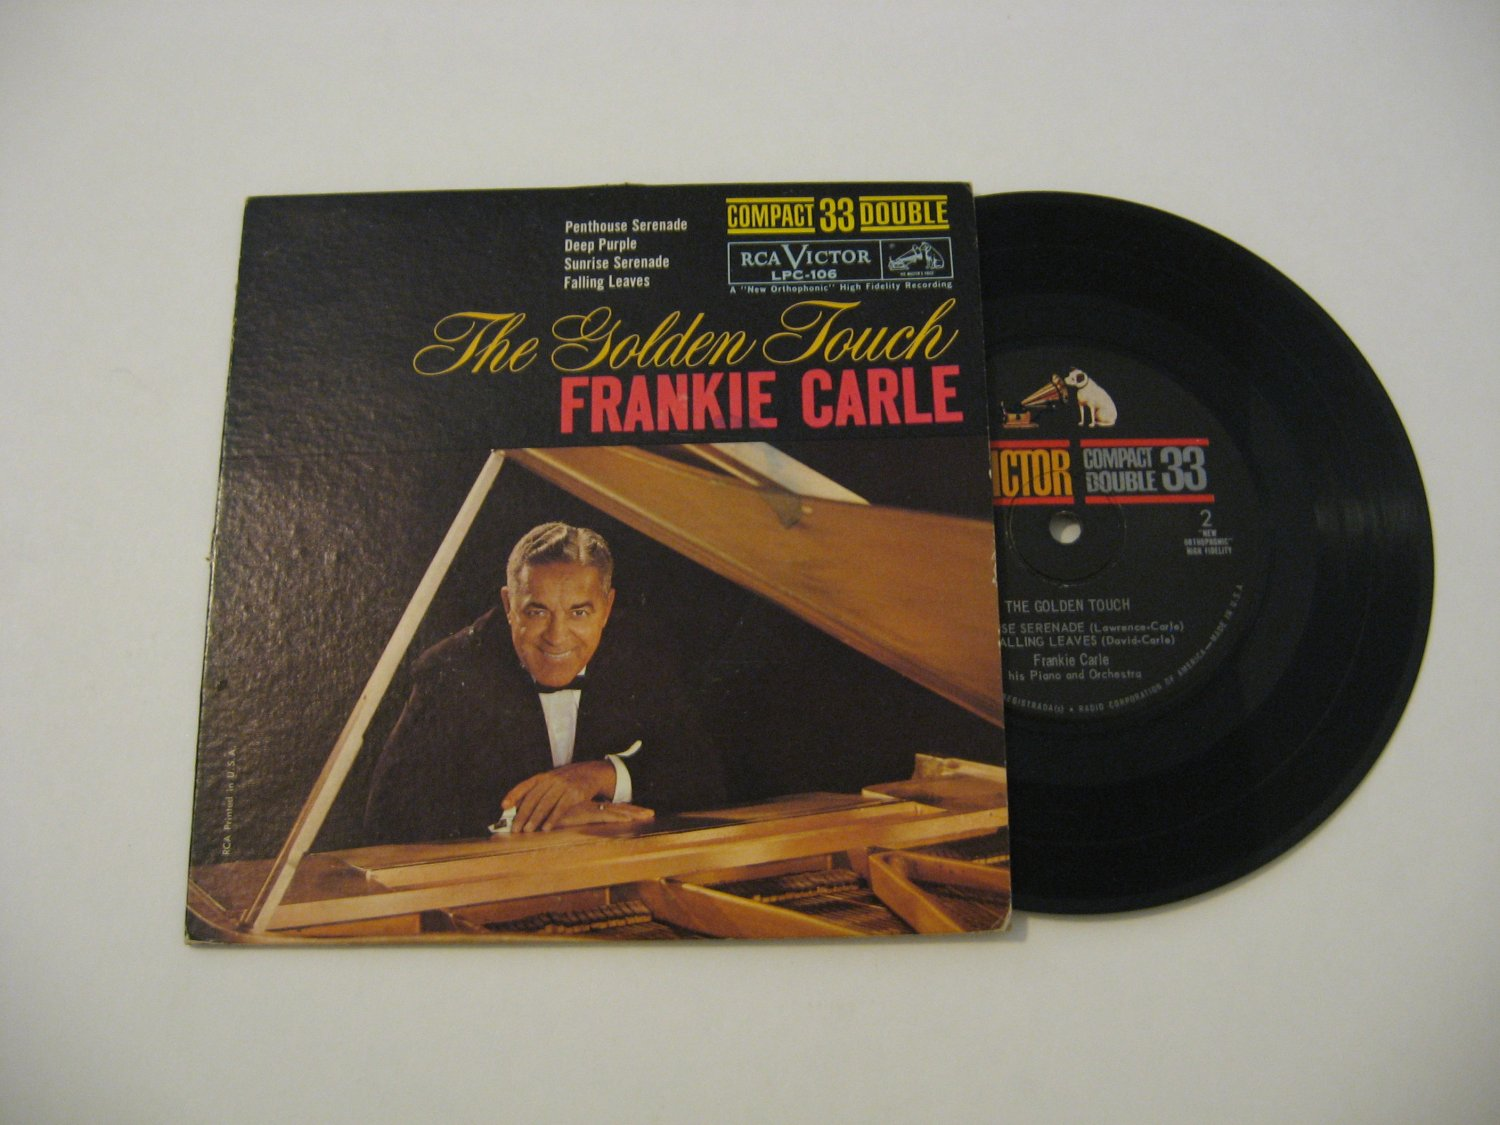 Frankie Carle - The Golden Touch - 1961 (Vinyl LP)